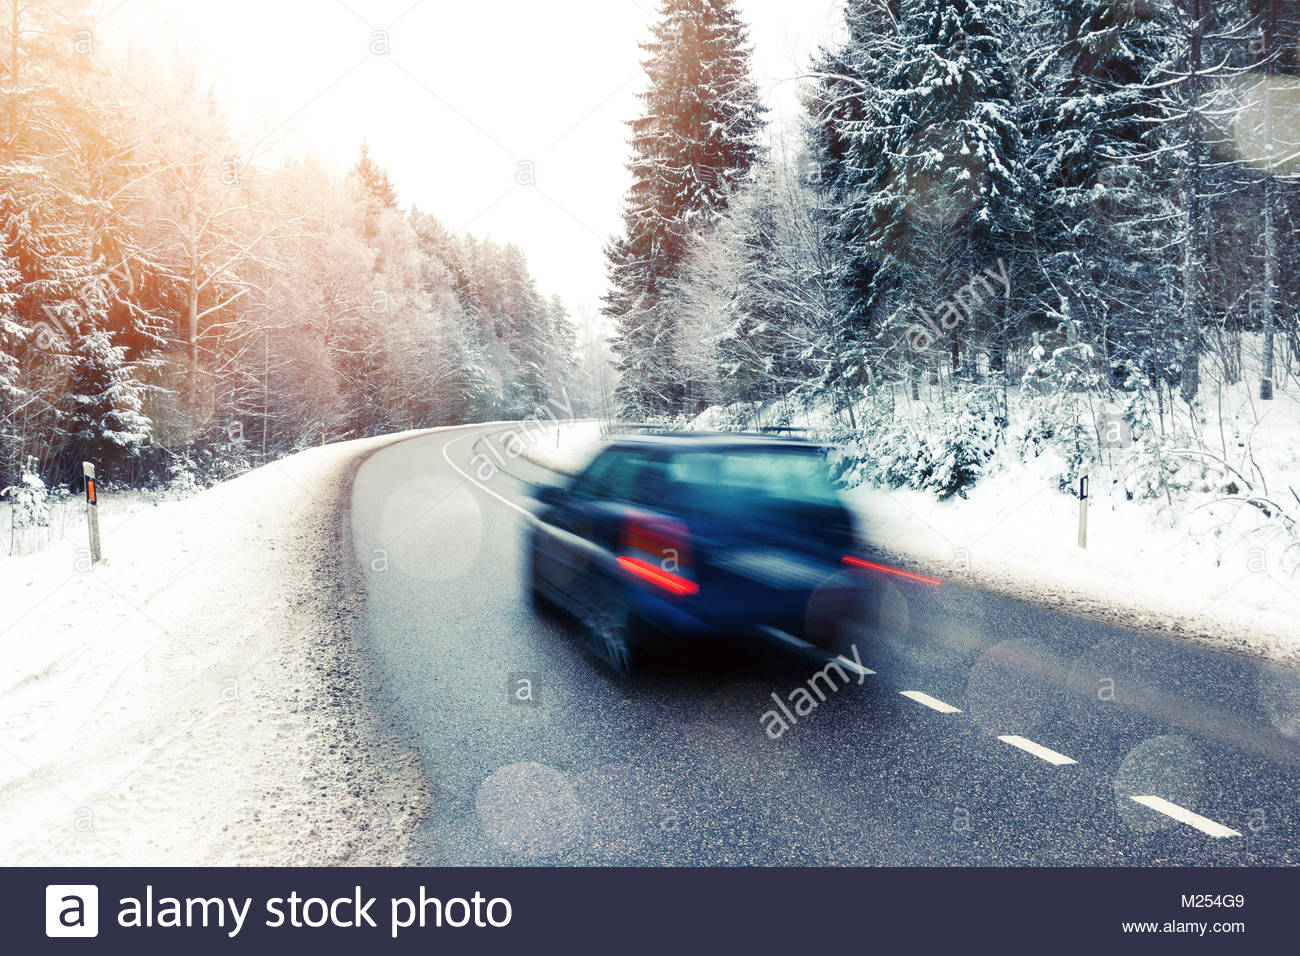 Lonely car in motion blur on the road in winter landscape with sunset and glowing light overlays - Stock Image